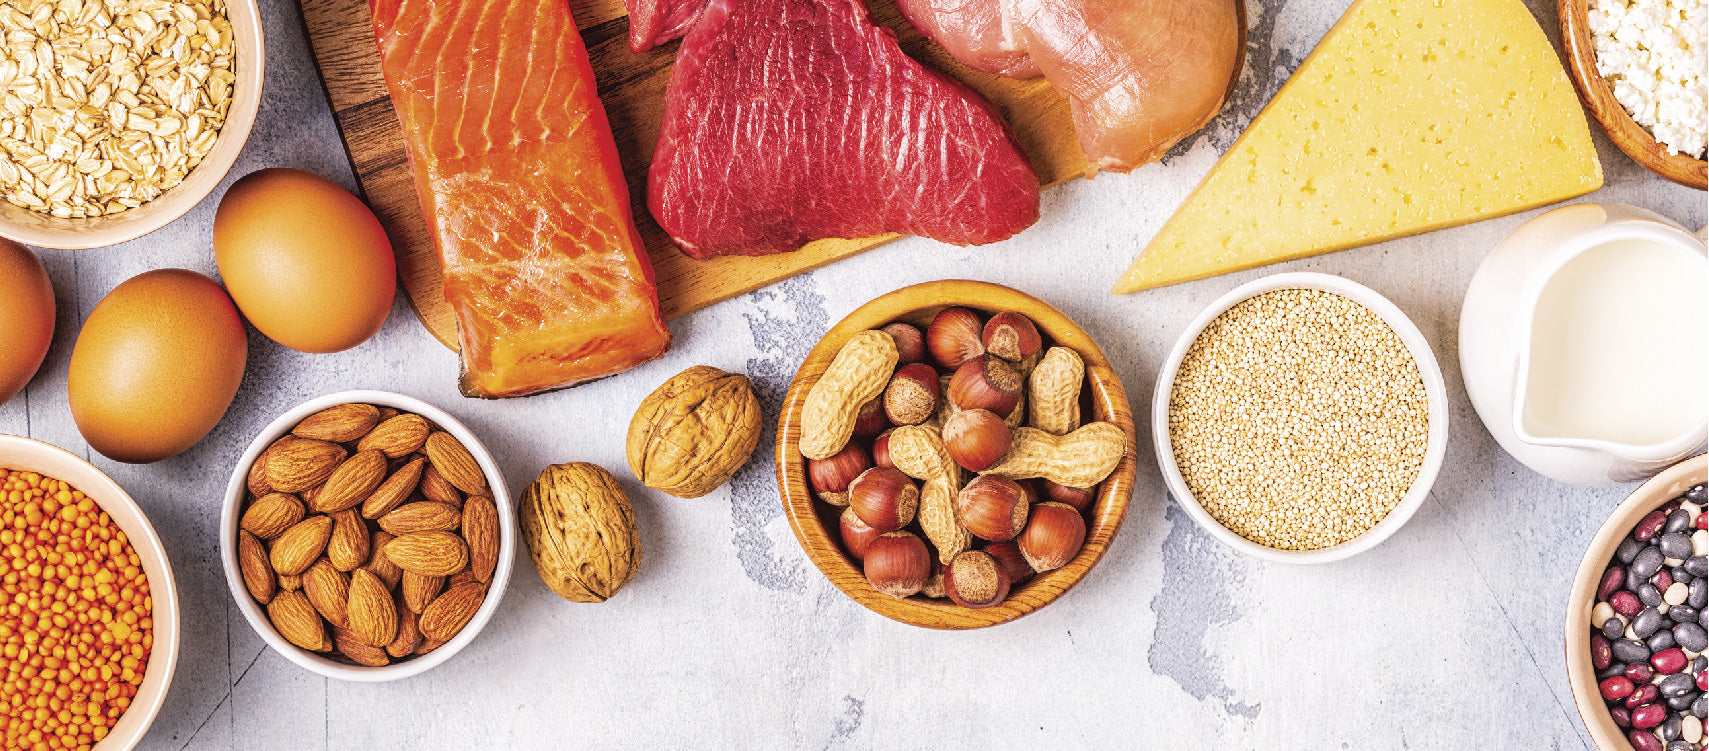 Protein Rich foods like nuts